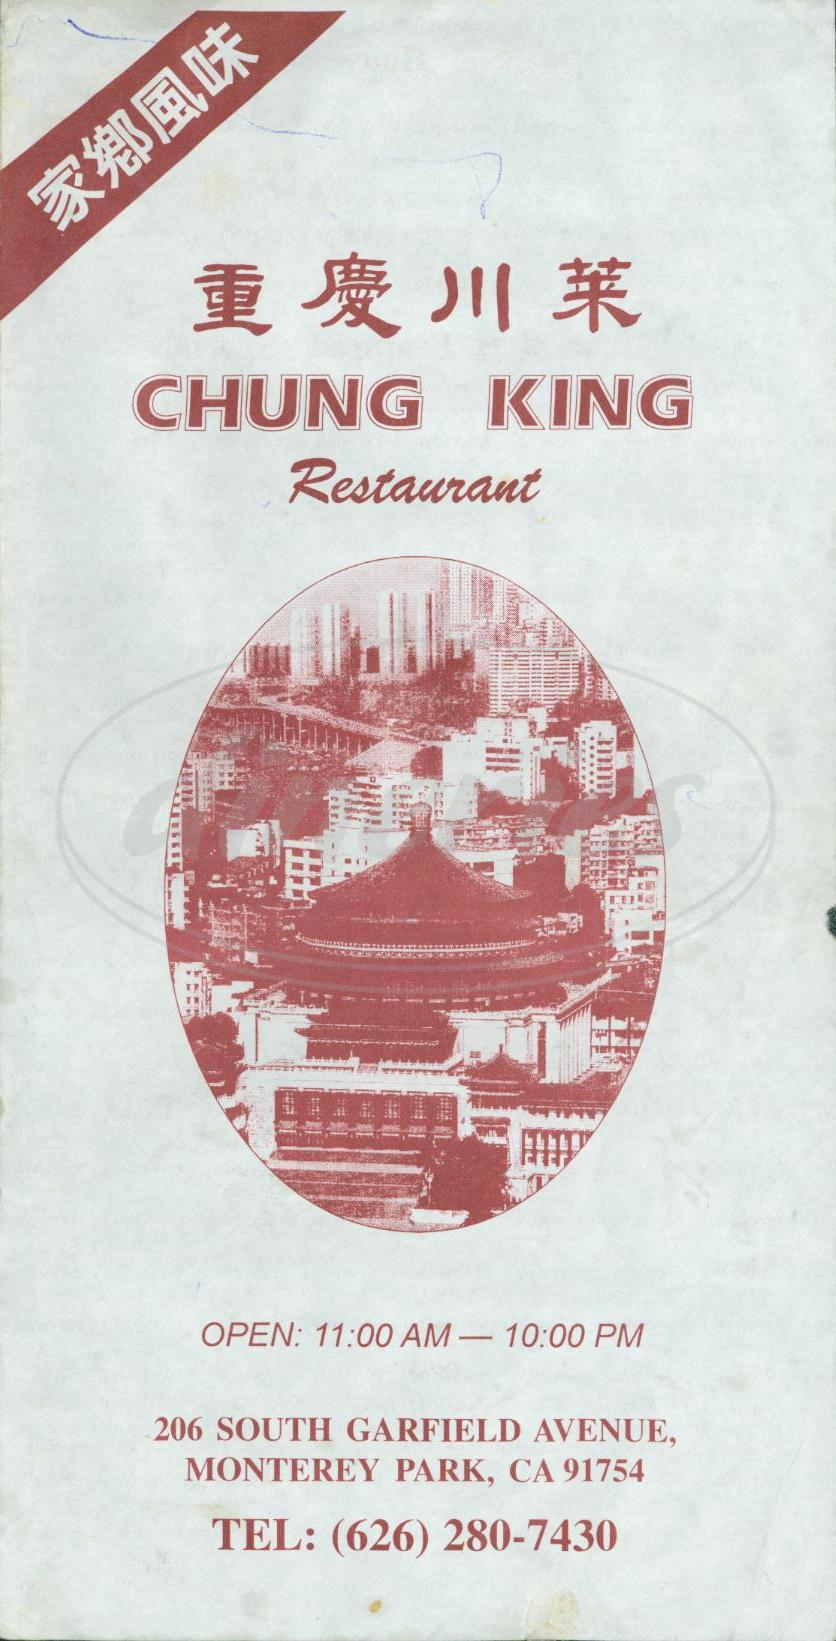 menu for Chung King Restaurant